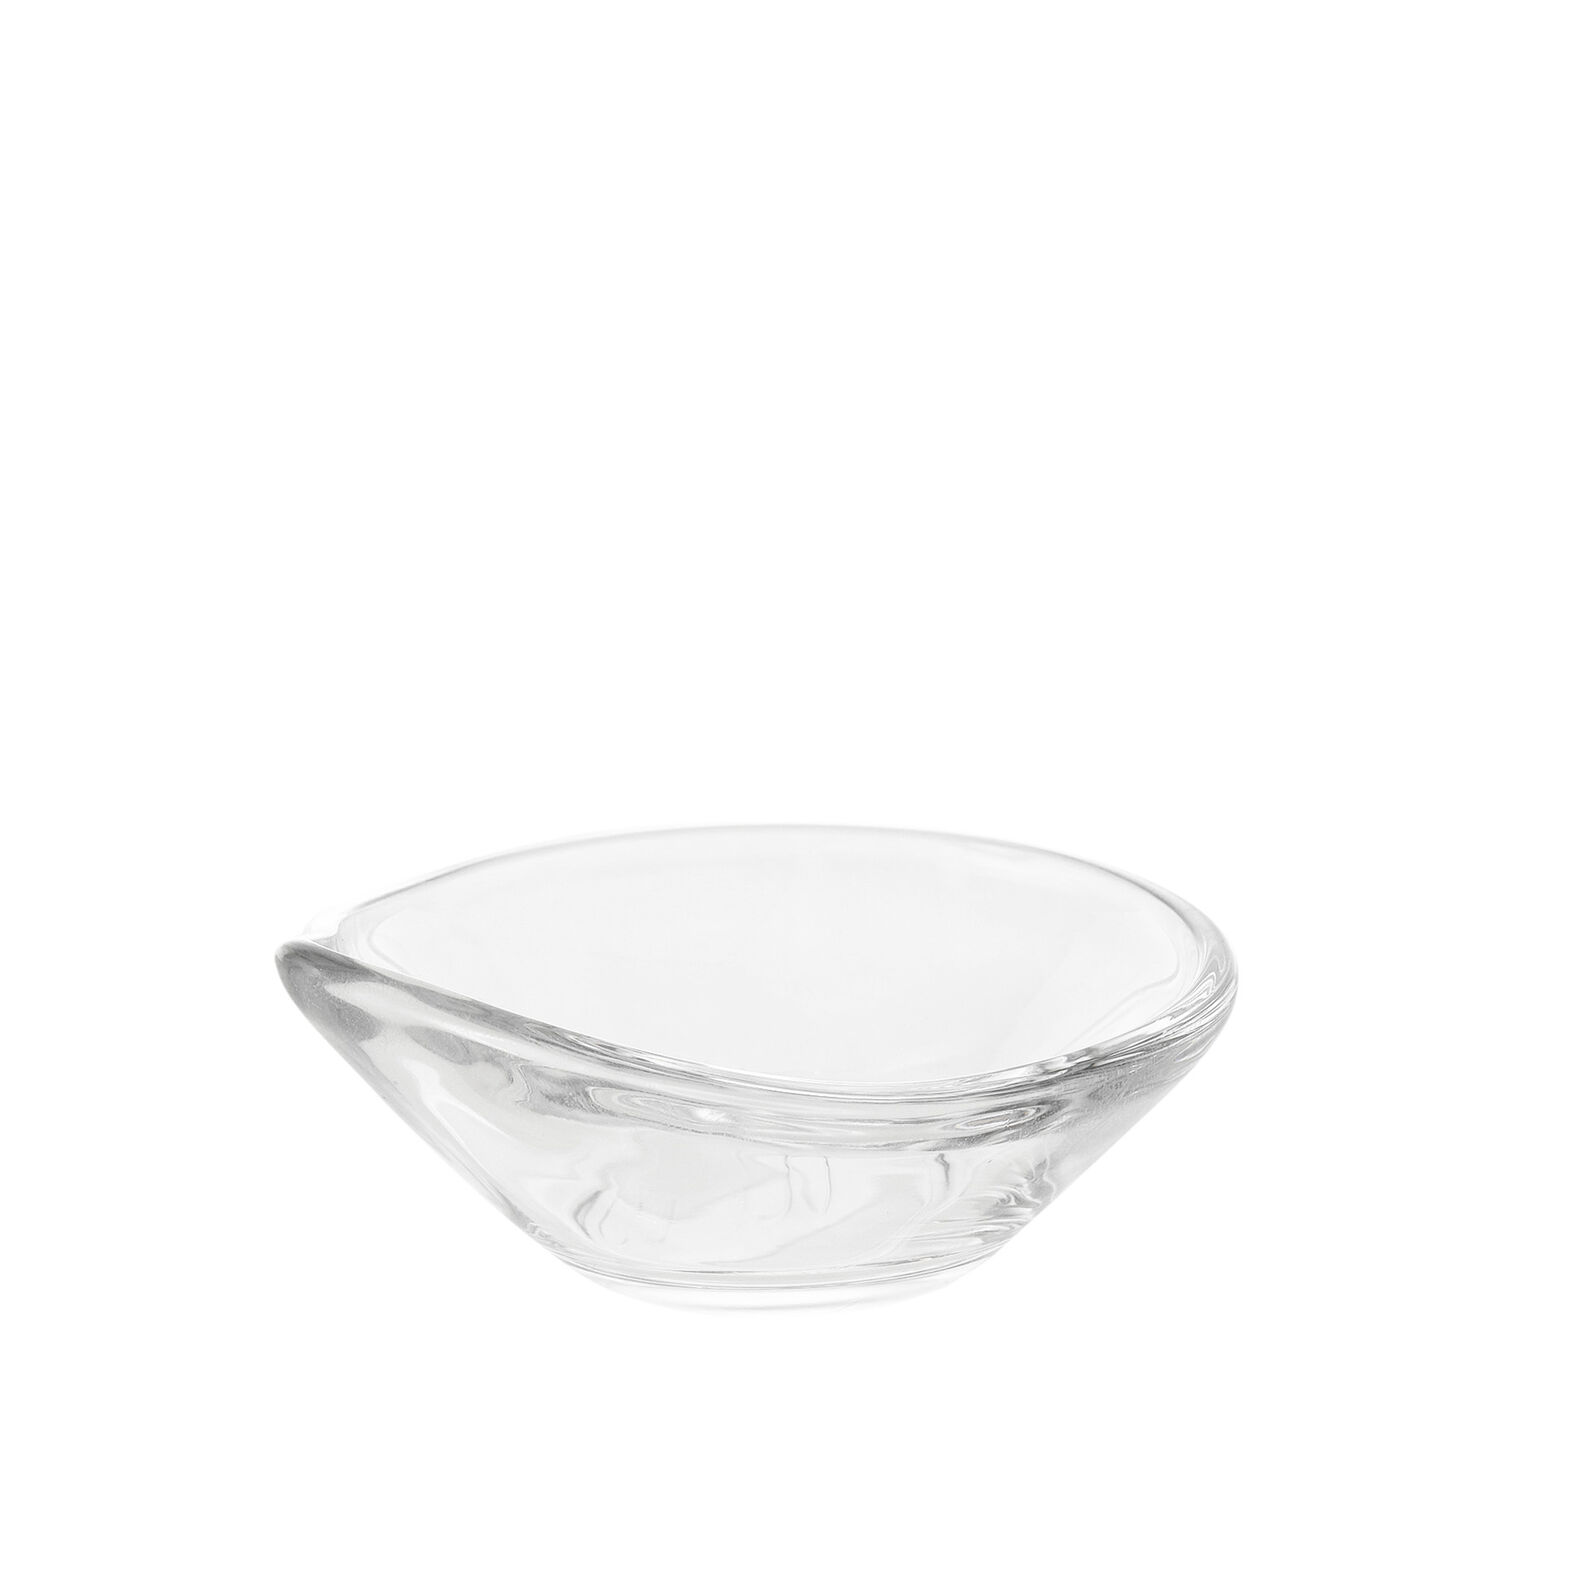 Glass dessert bowl with oblong side